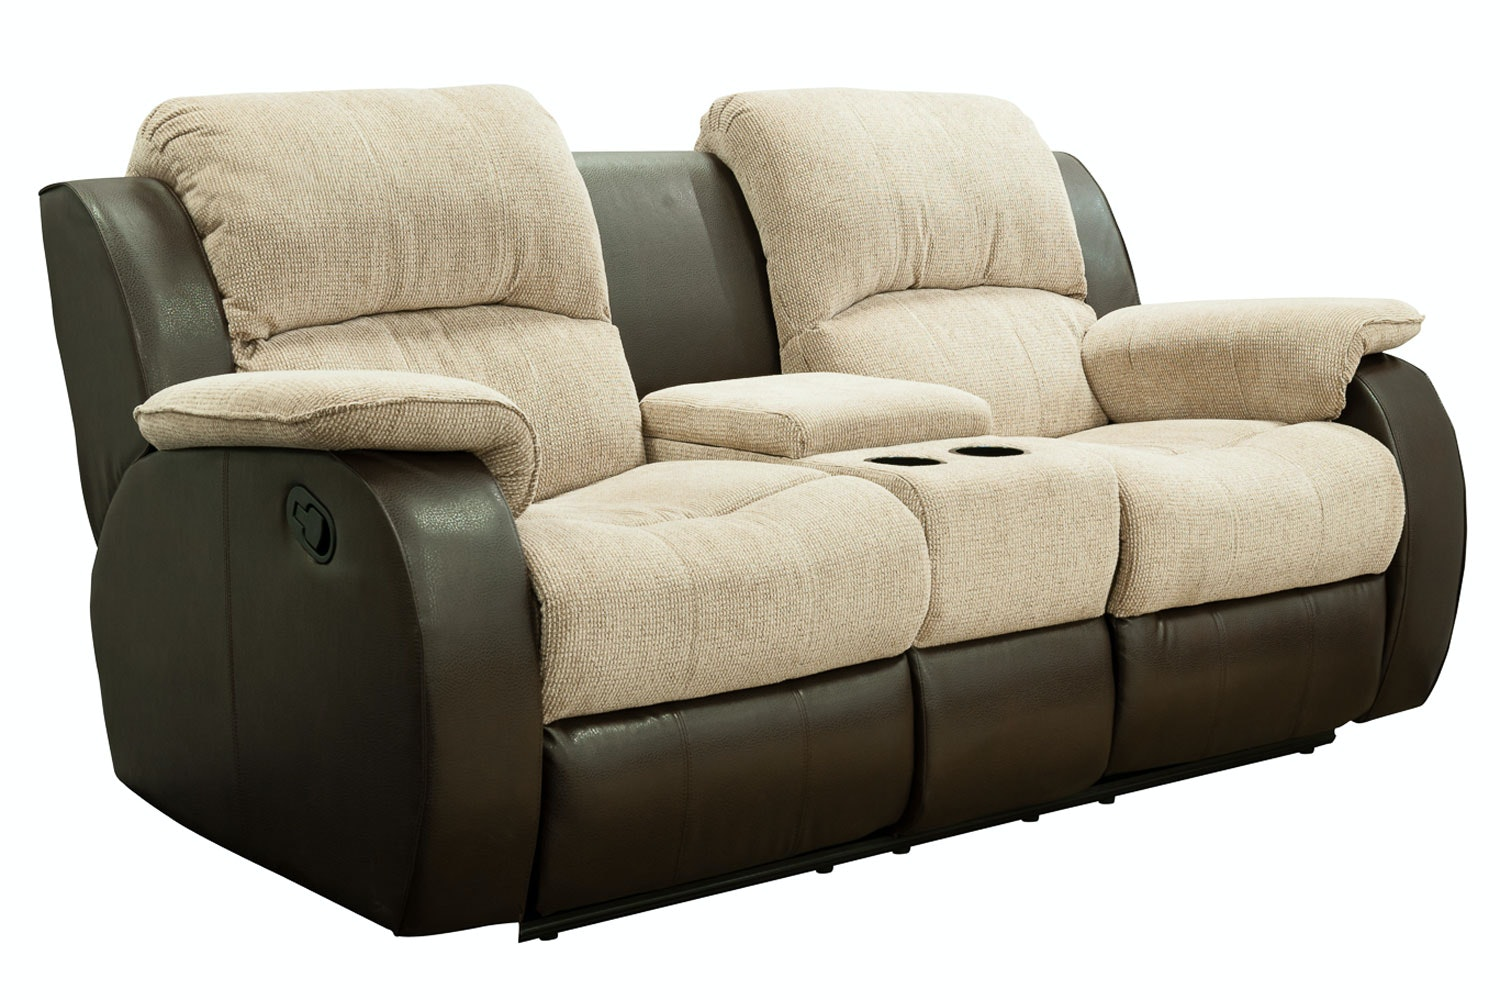 Harvey Norman Reclining Sofas Refil Sofa